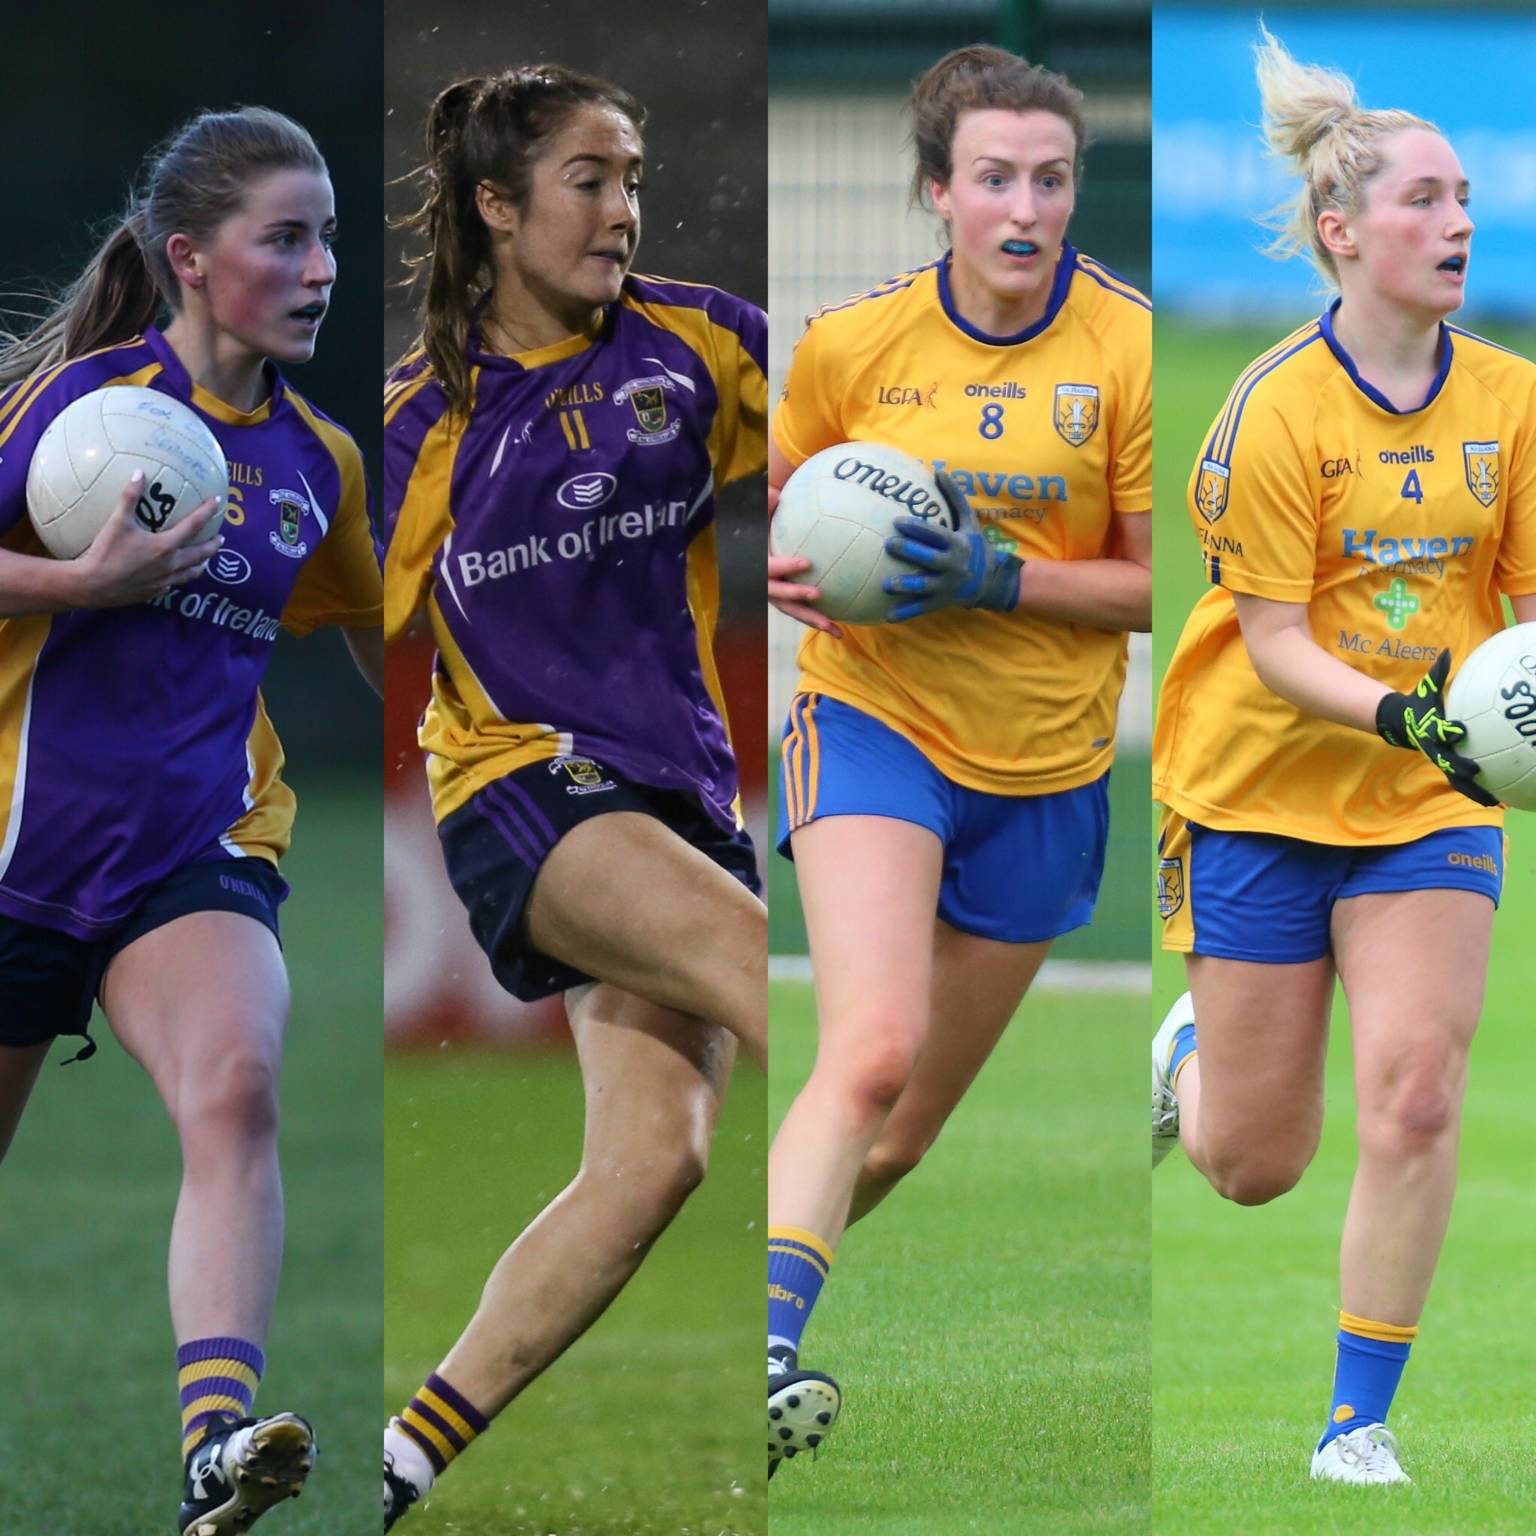 Four ladies footballers who will be involved in tonight's Dublin LGFA semi final fixtures.